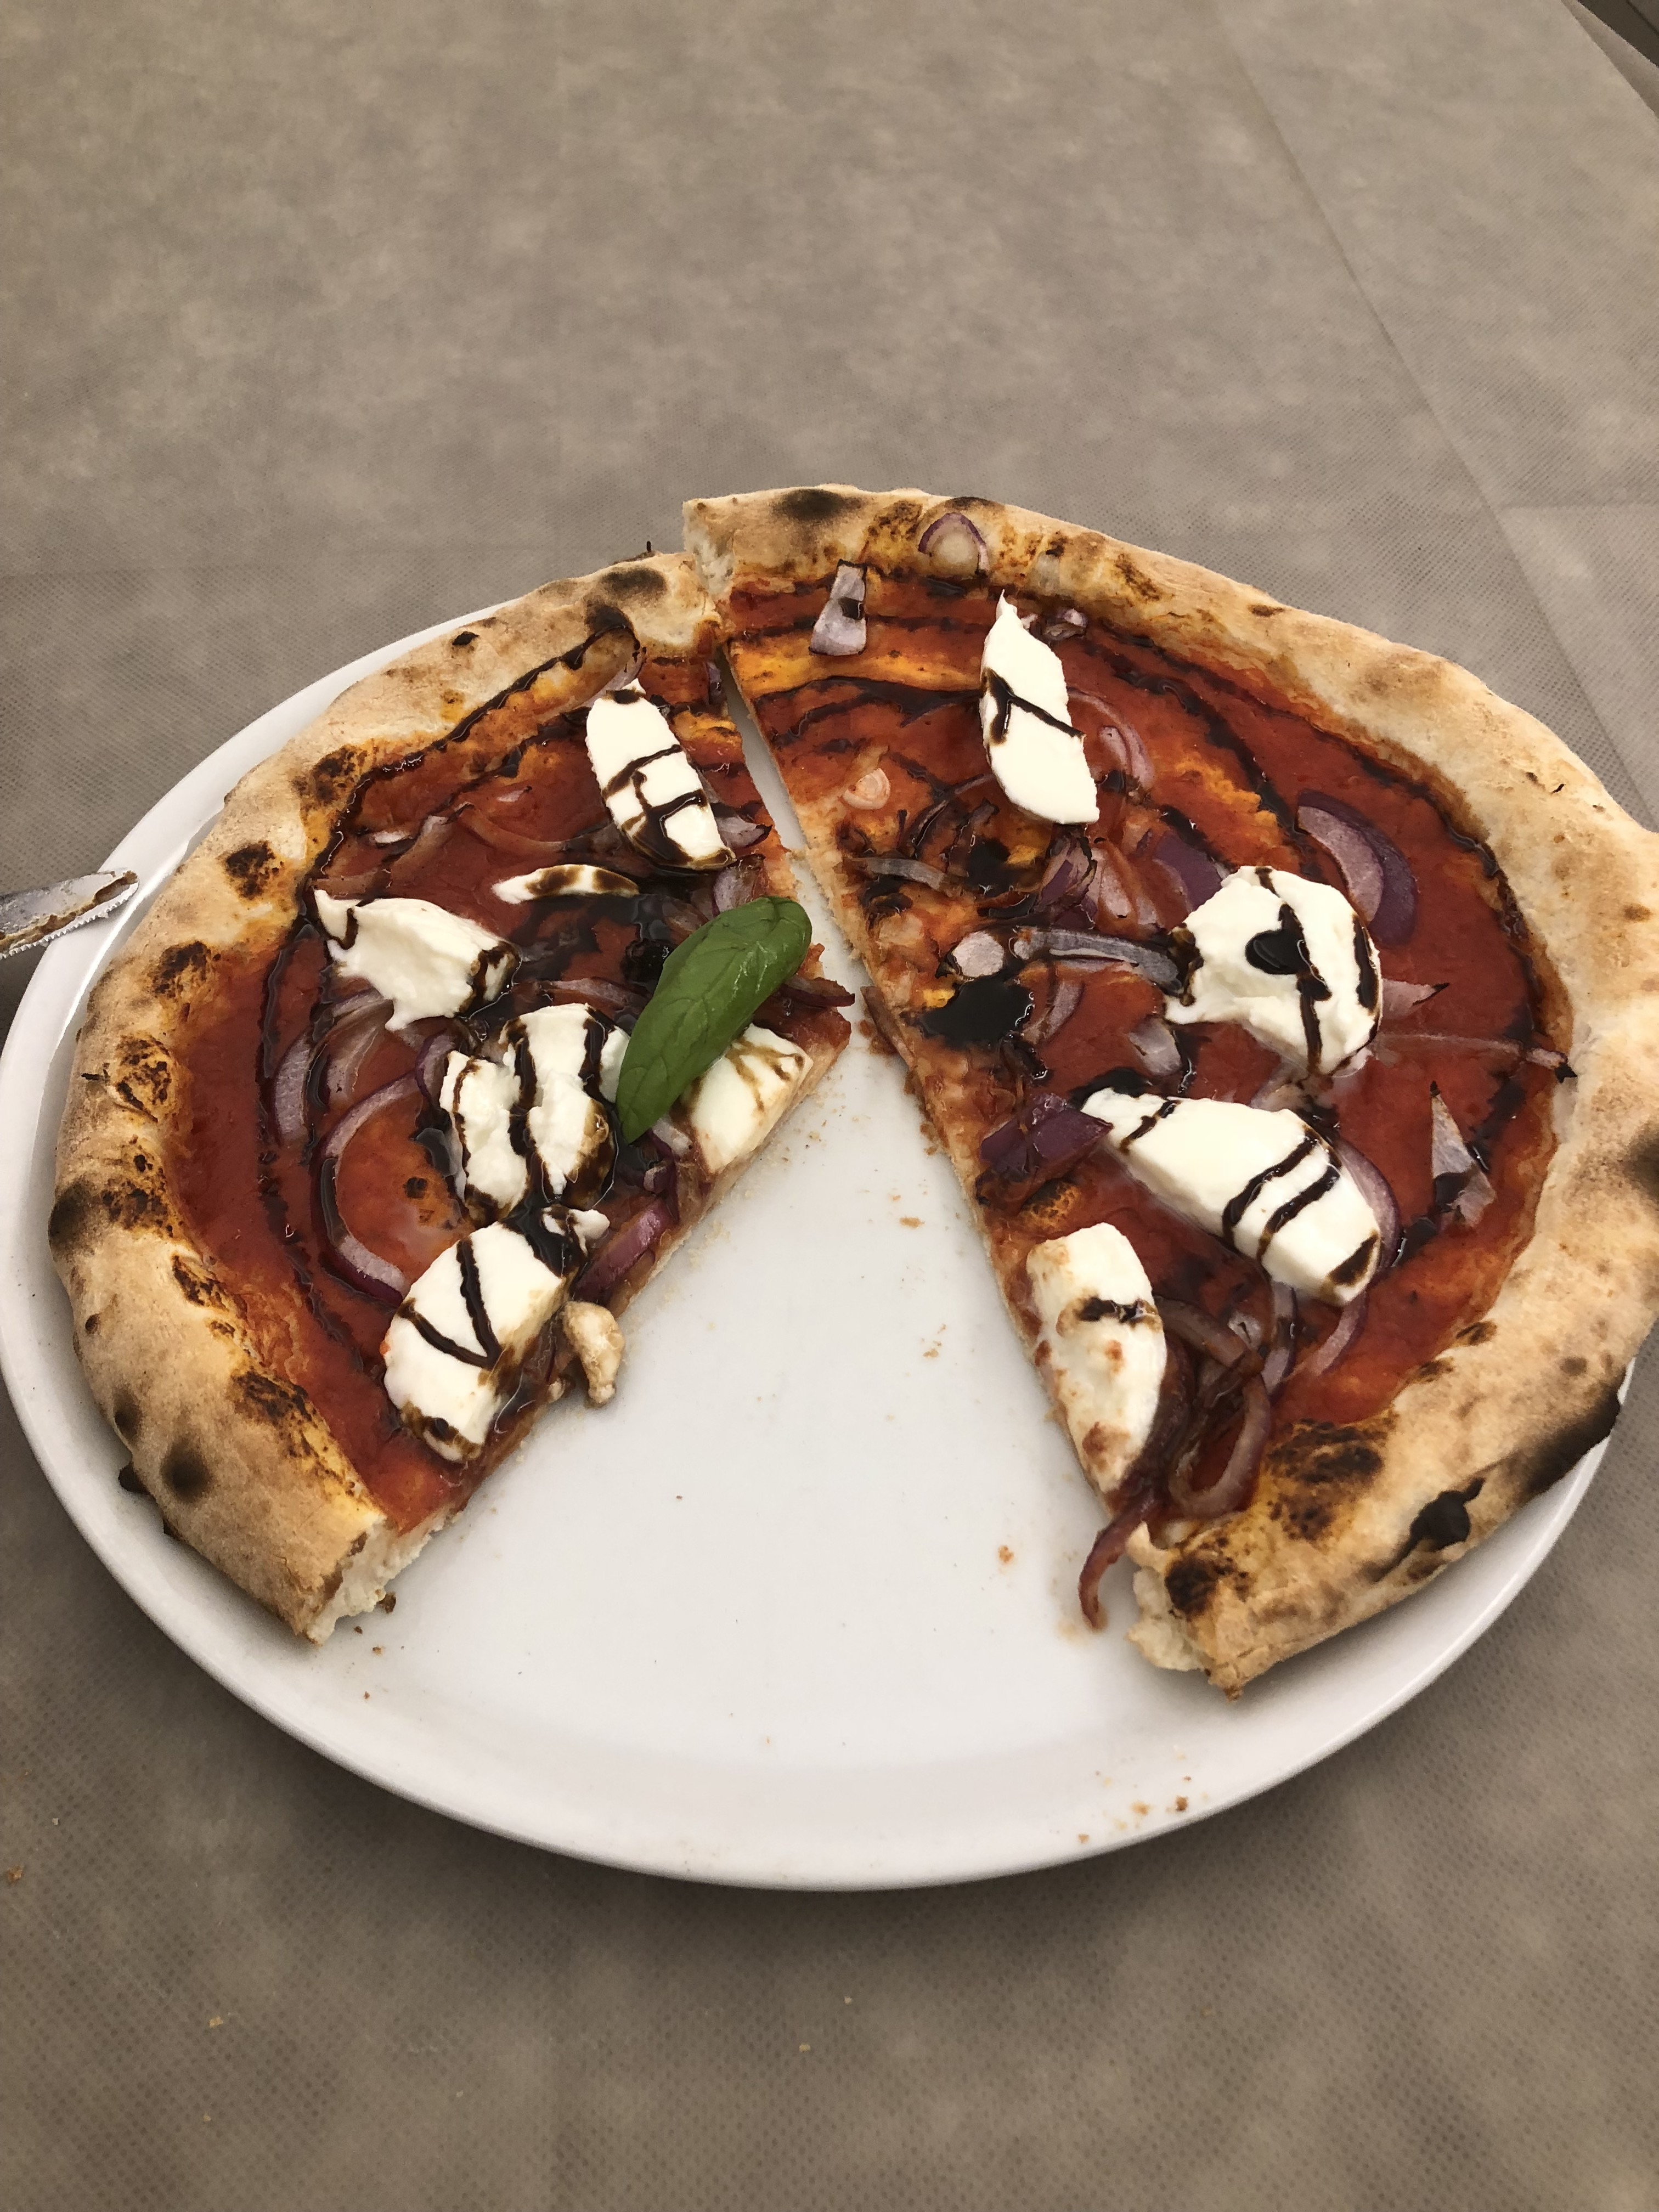 A pizza with fresh mozzarella drizzled with a reduced balsamic vinegar.  One slice is missing.